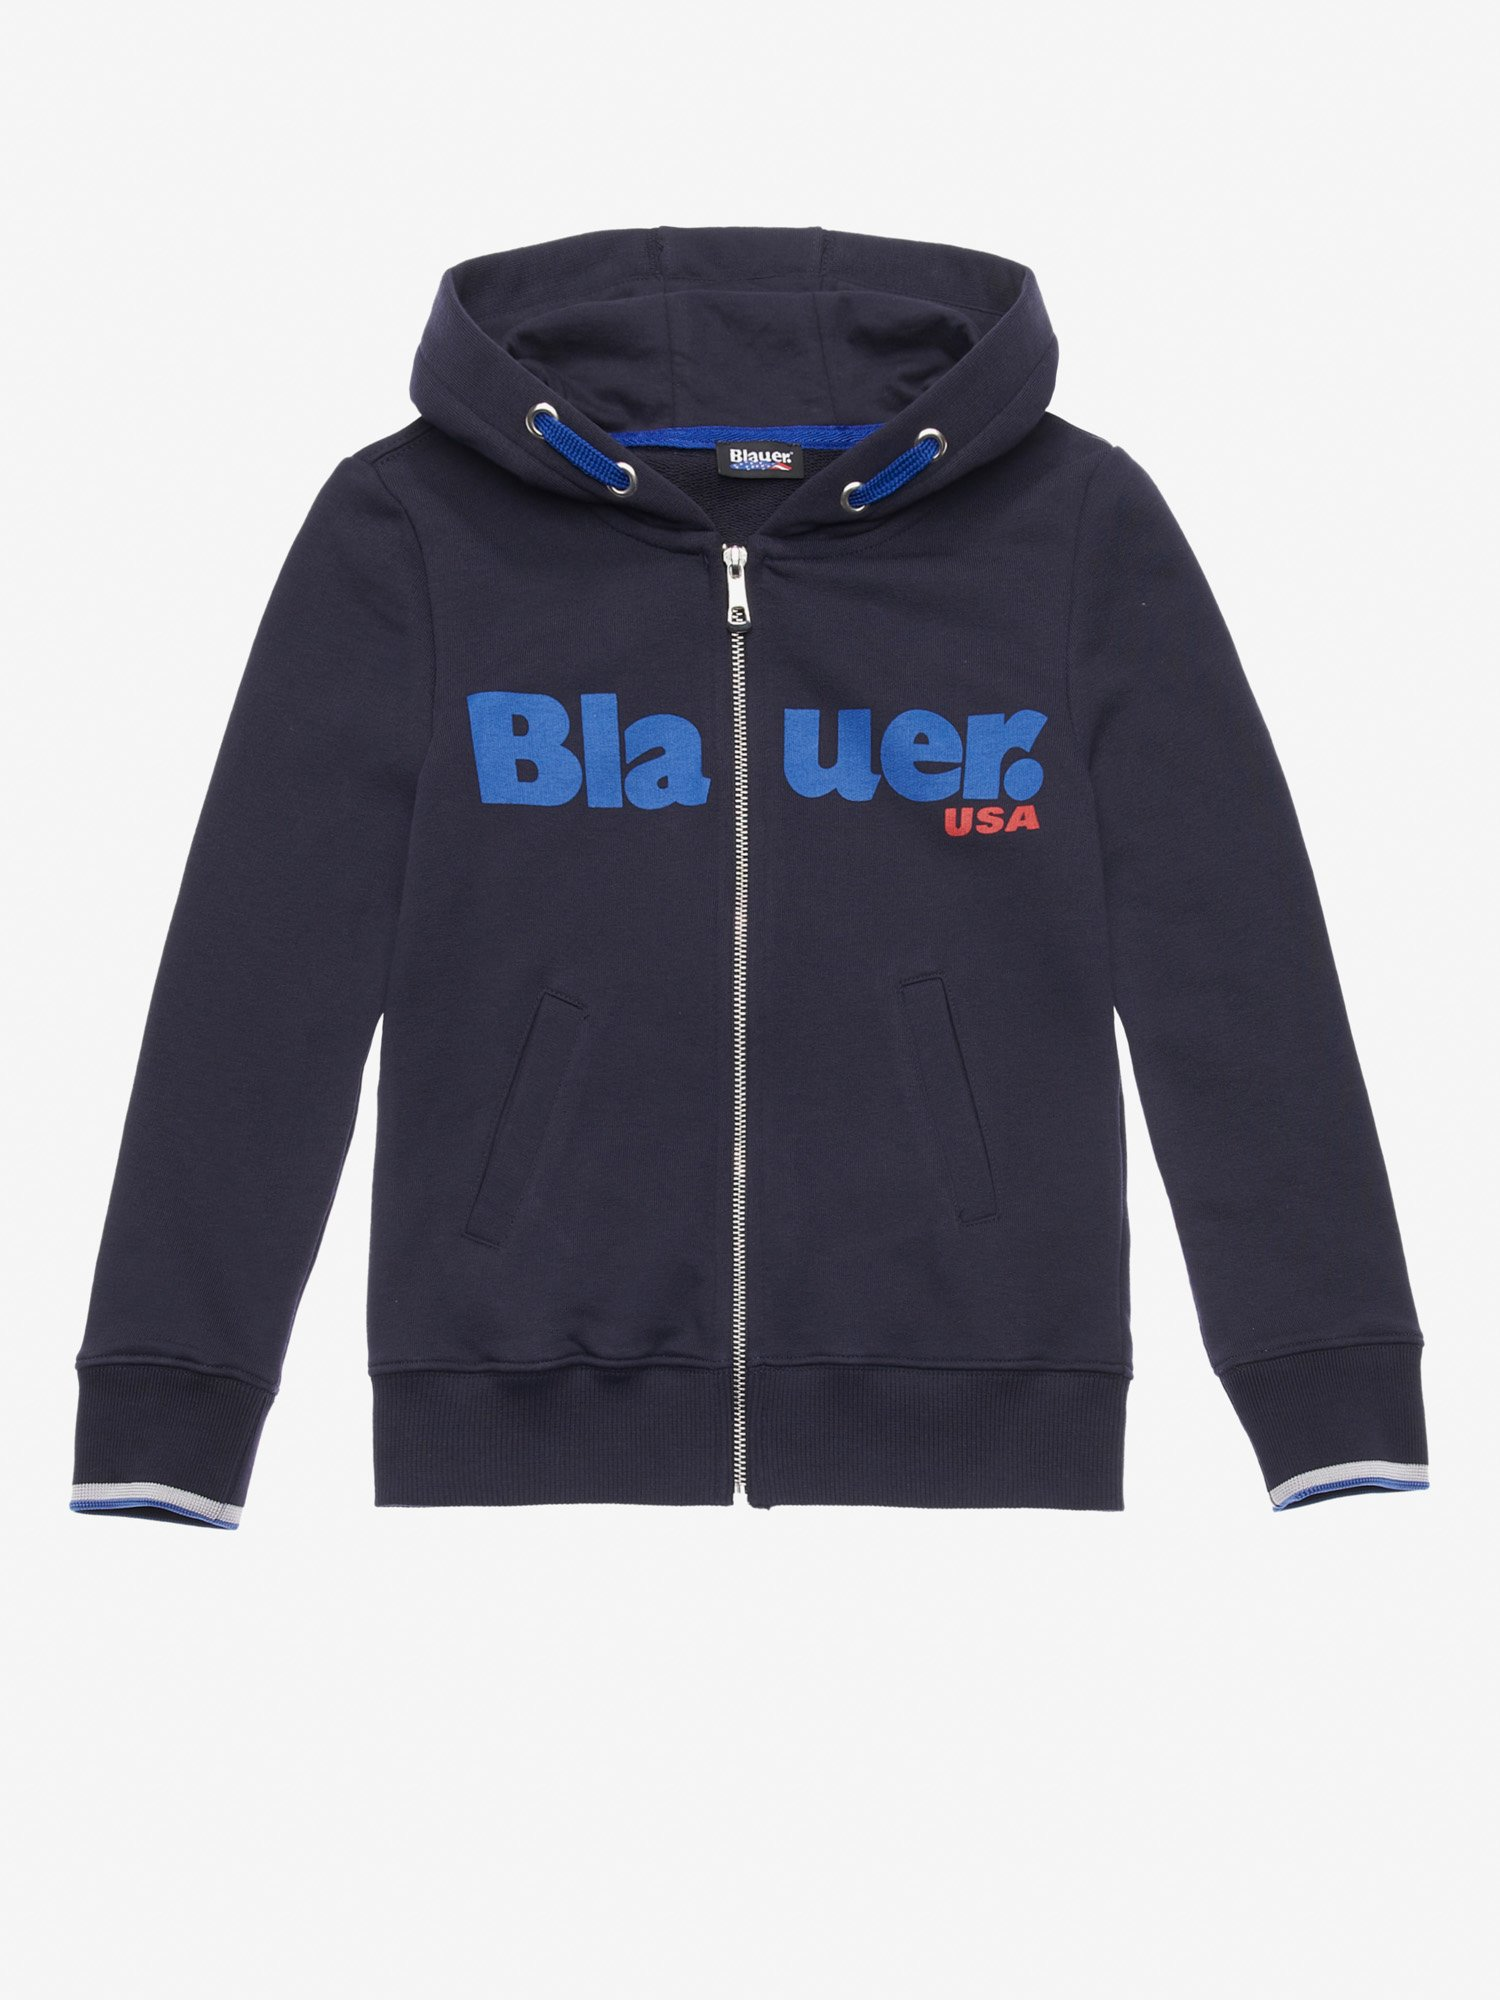 JUNIOR OPEN HOODED SWEATSHIRT - Blauer